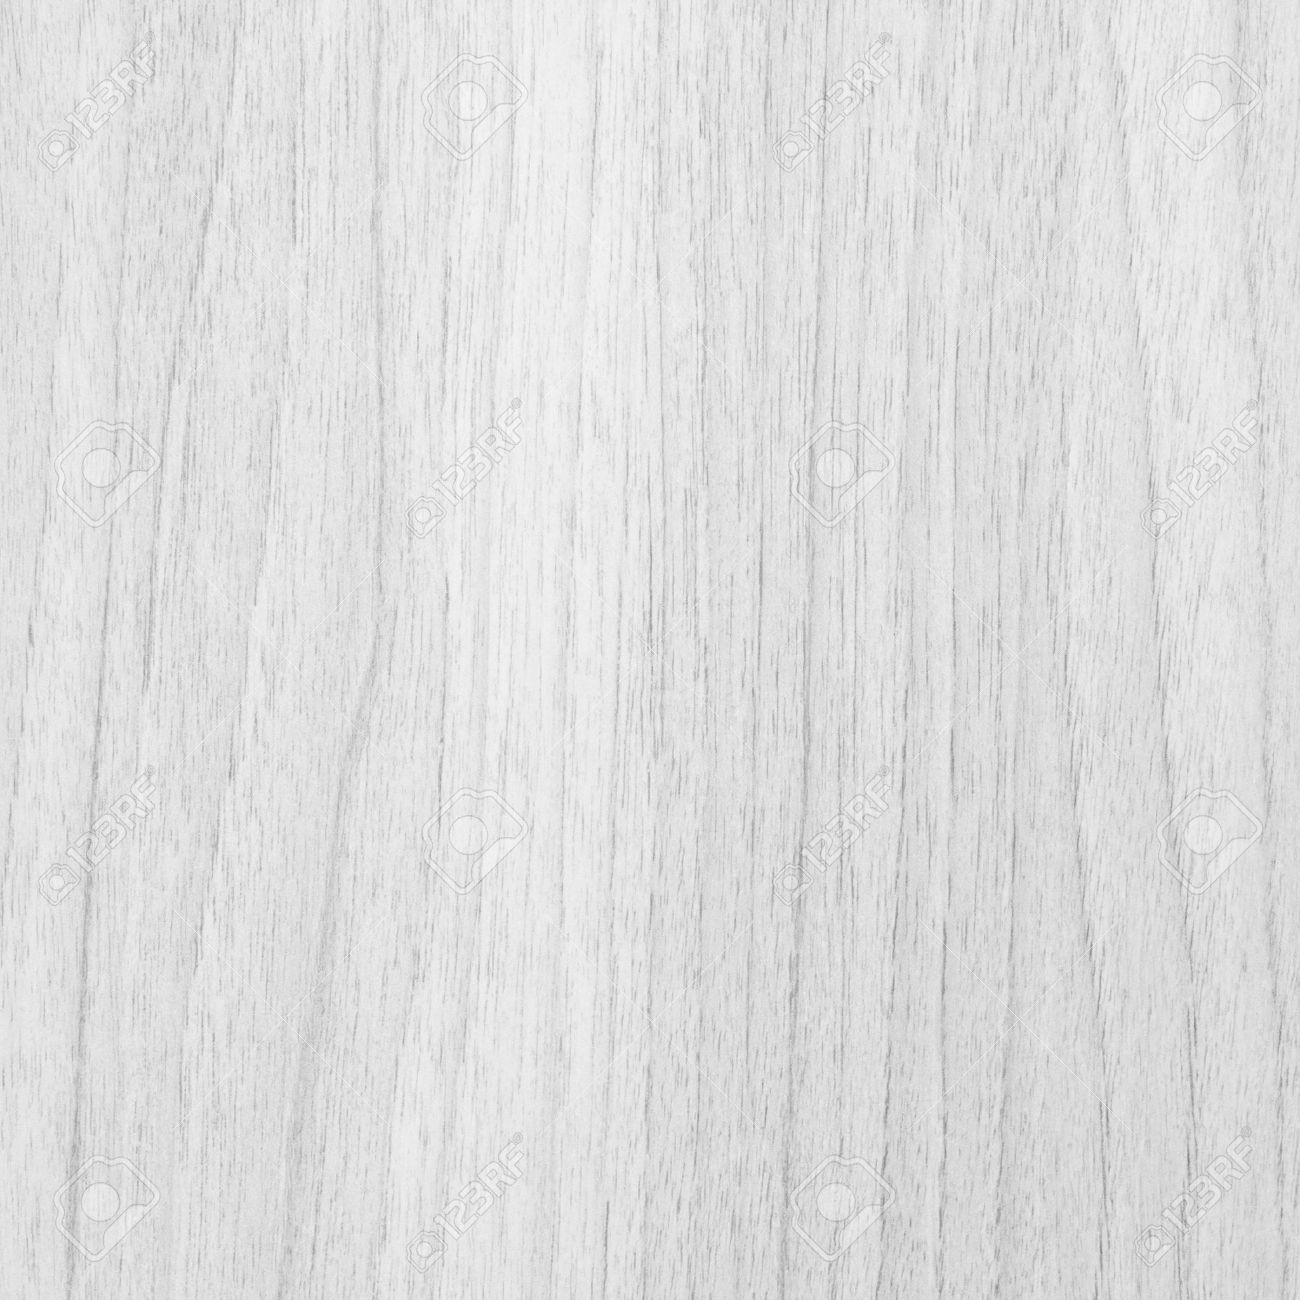 White wood floor texture and background seamless - 49880655